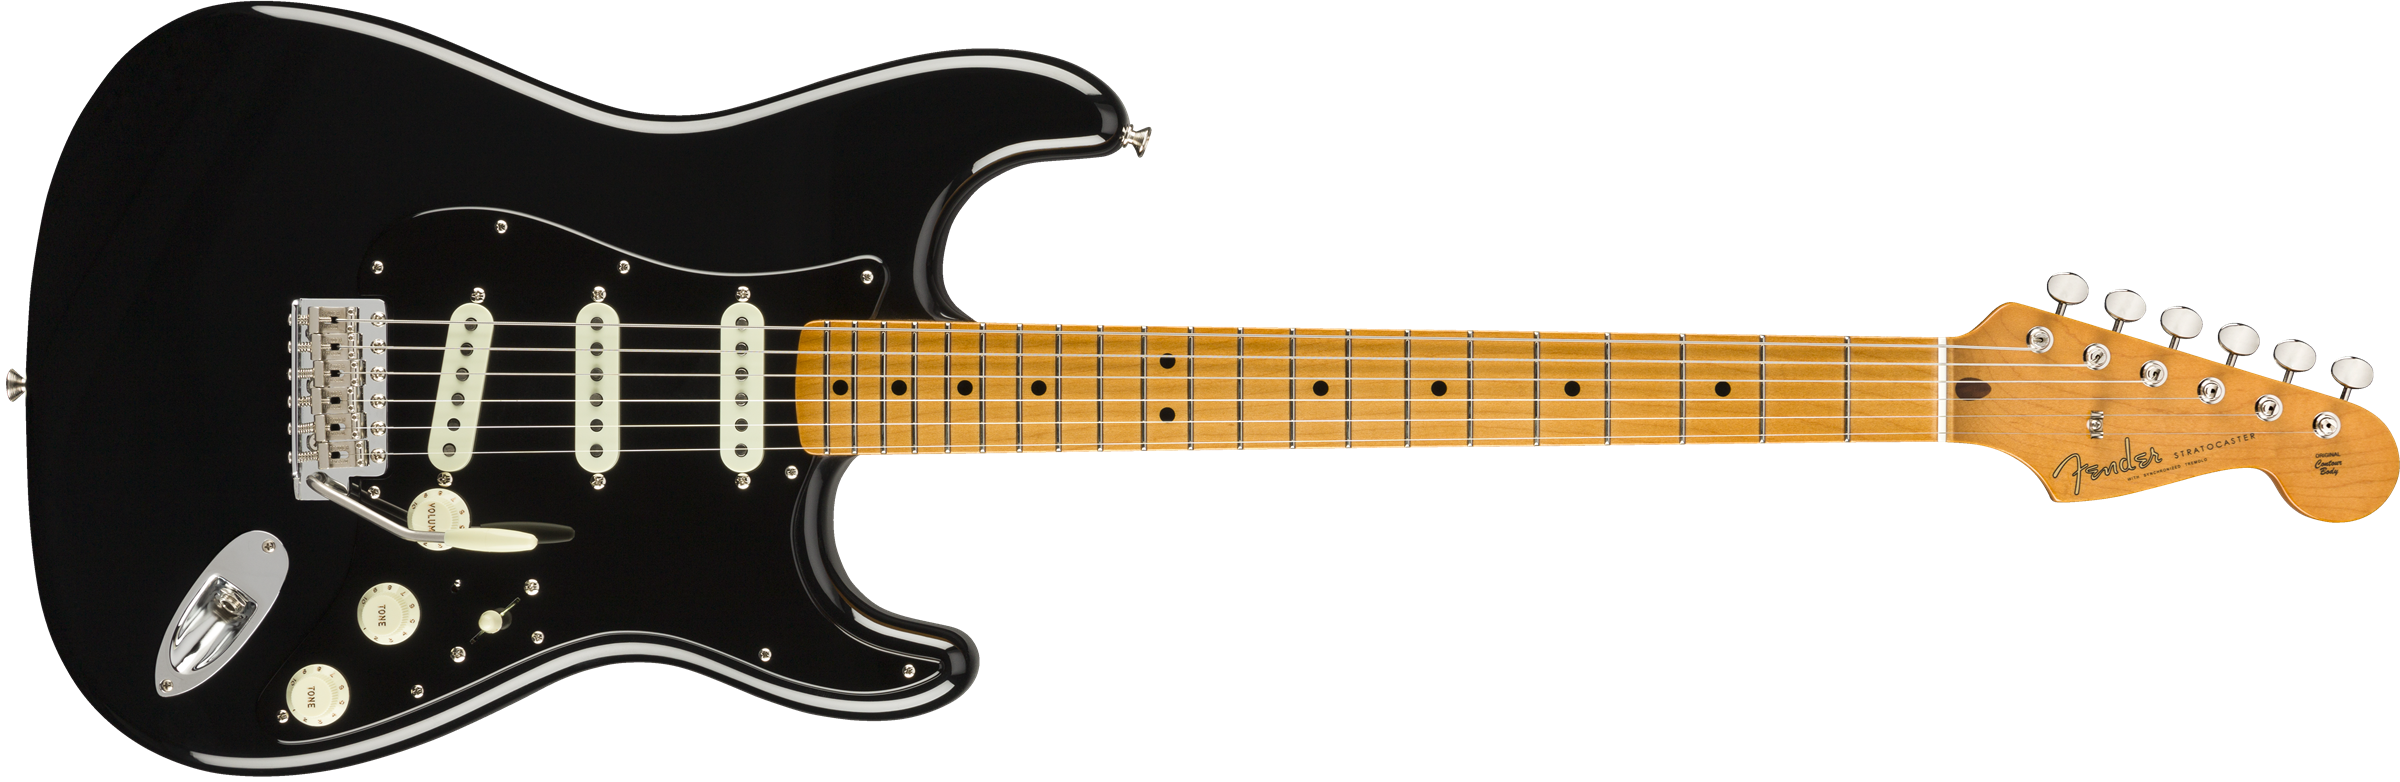 david gilmour signature stratocaster® artist series fender copyright © 2015 fender musical instruments corporation all rights reserved terms of use privacy policy